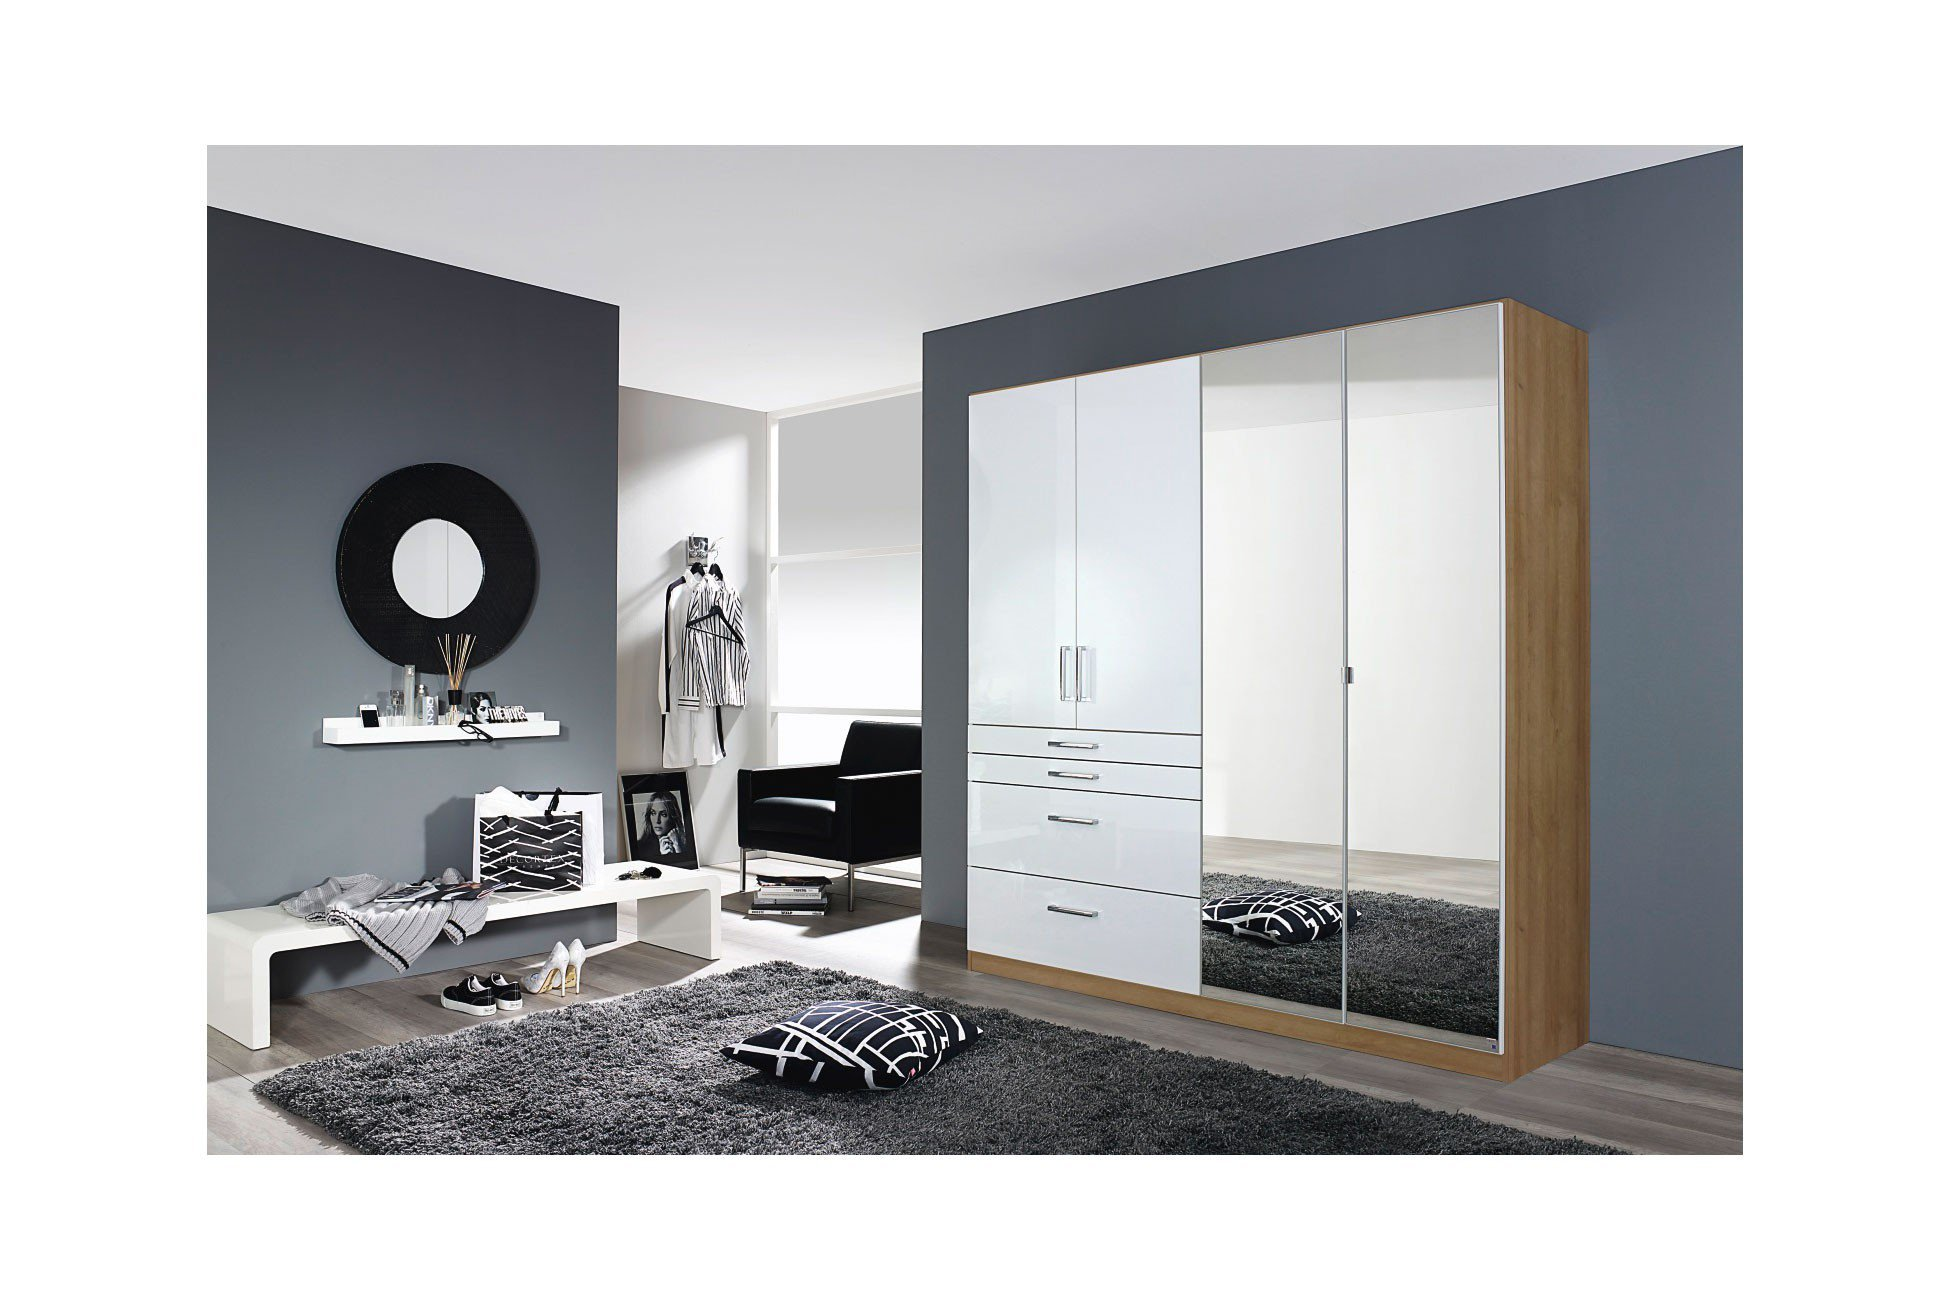 rauch homburg kombischrank 4 t rig wei eiche m bel letz ihr online shop. Black Bedroom Furniture Sets. Home Design Ideas